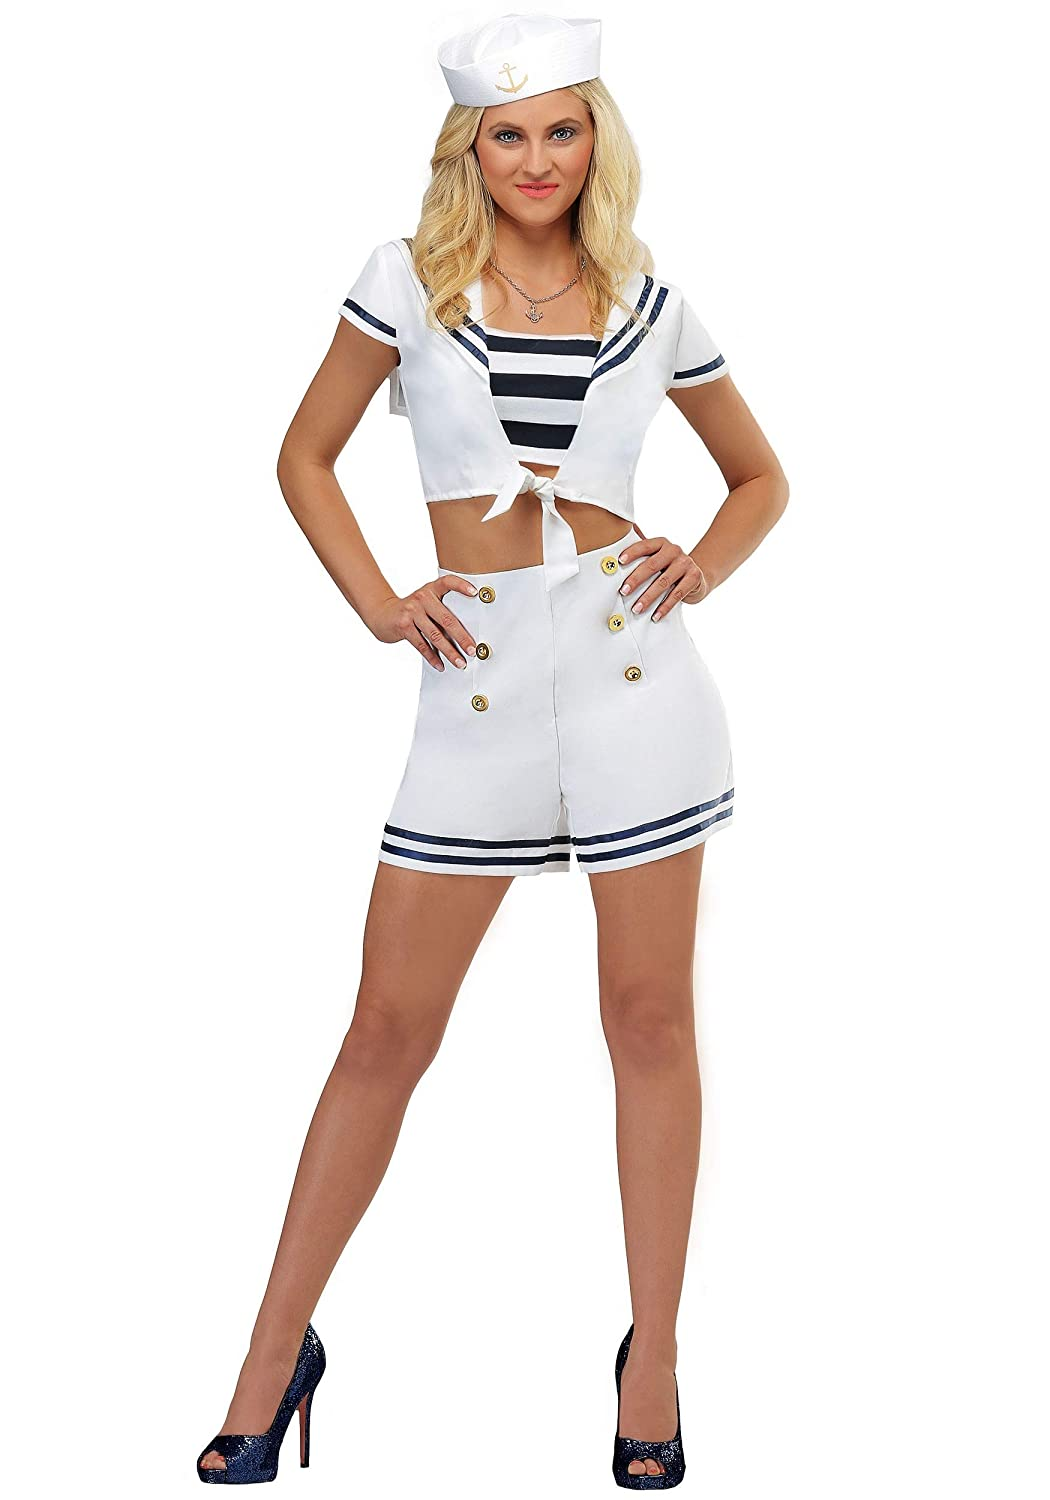 Pirate Fancy Dress Lady of the Seas Sailor Costume up to XXL